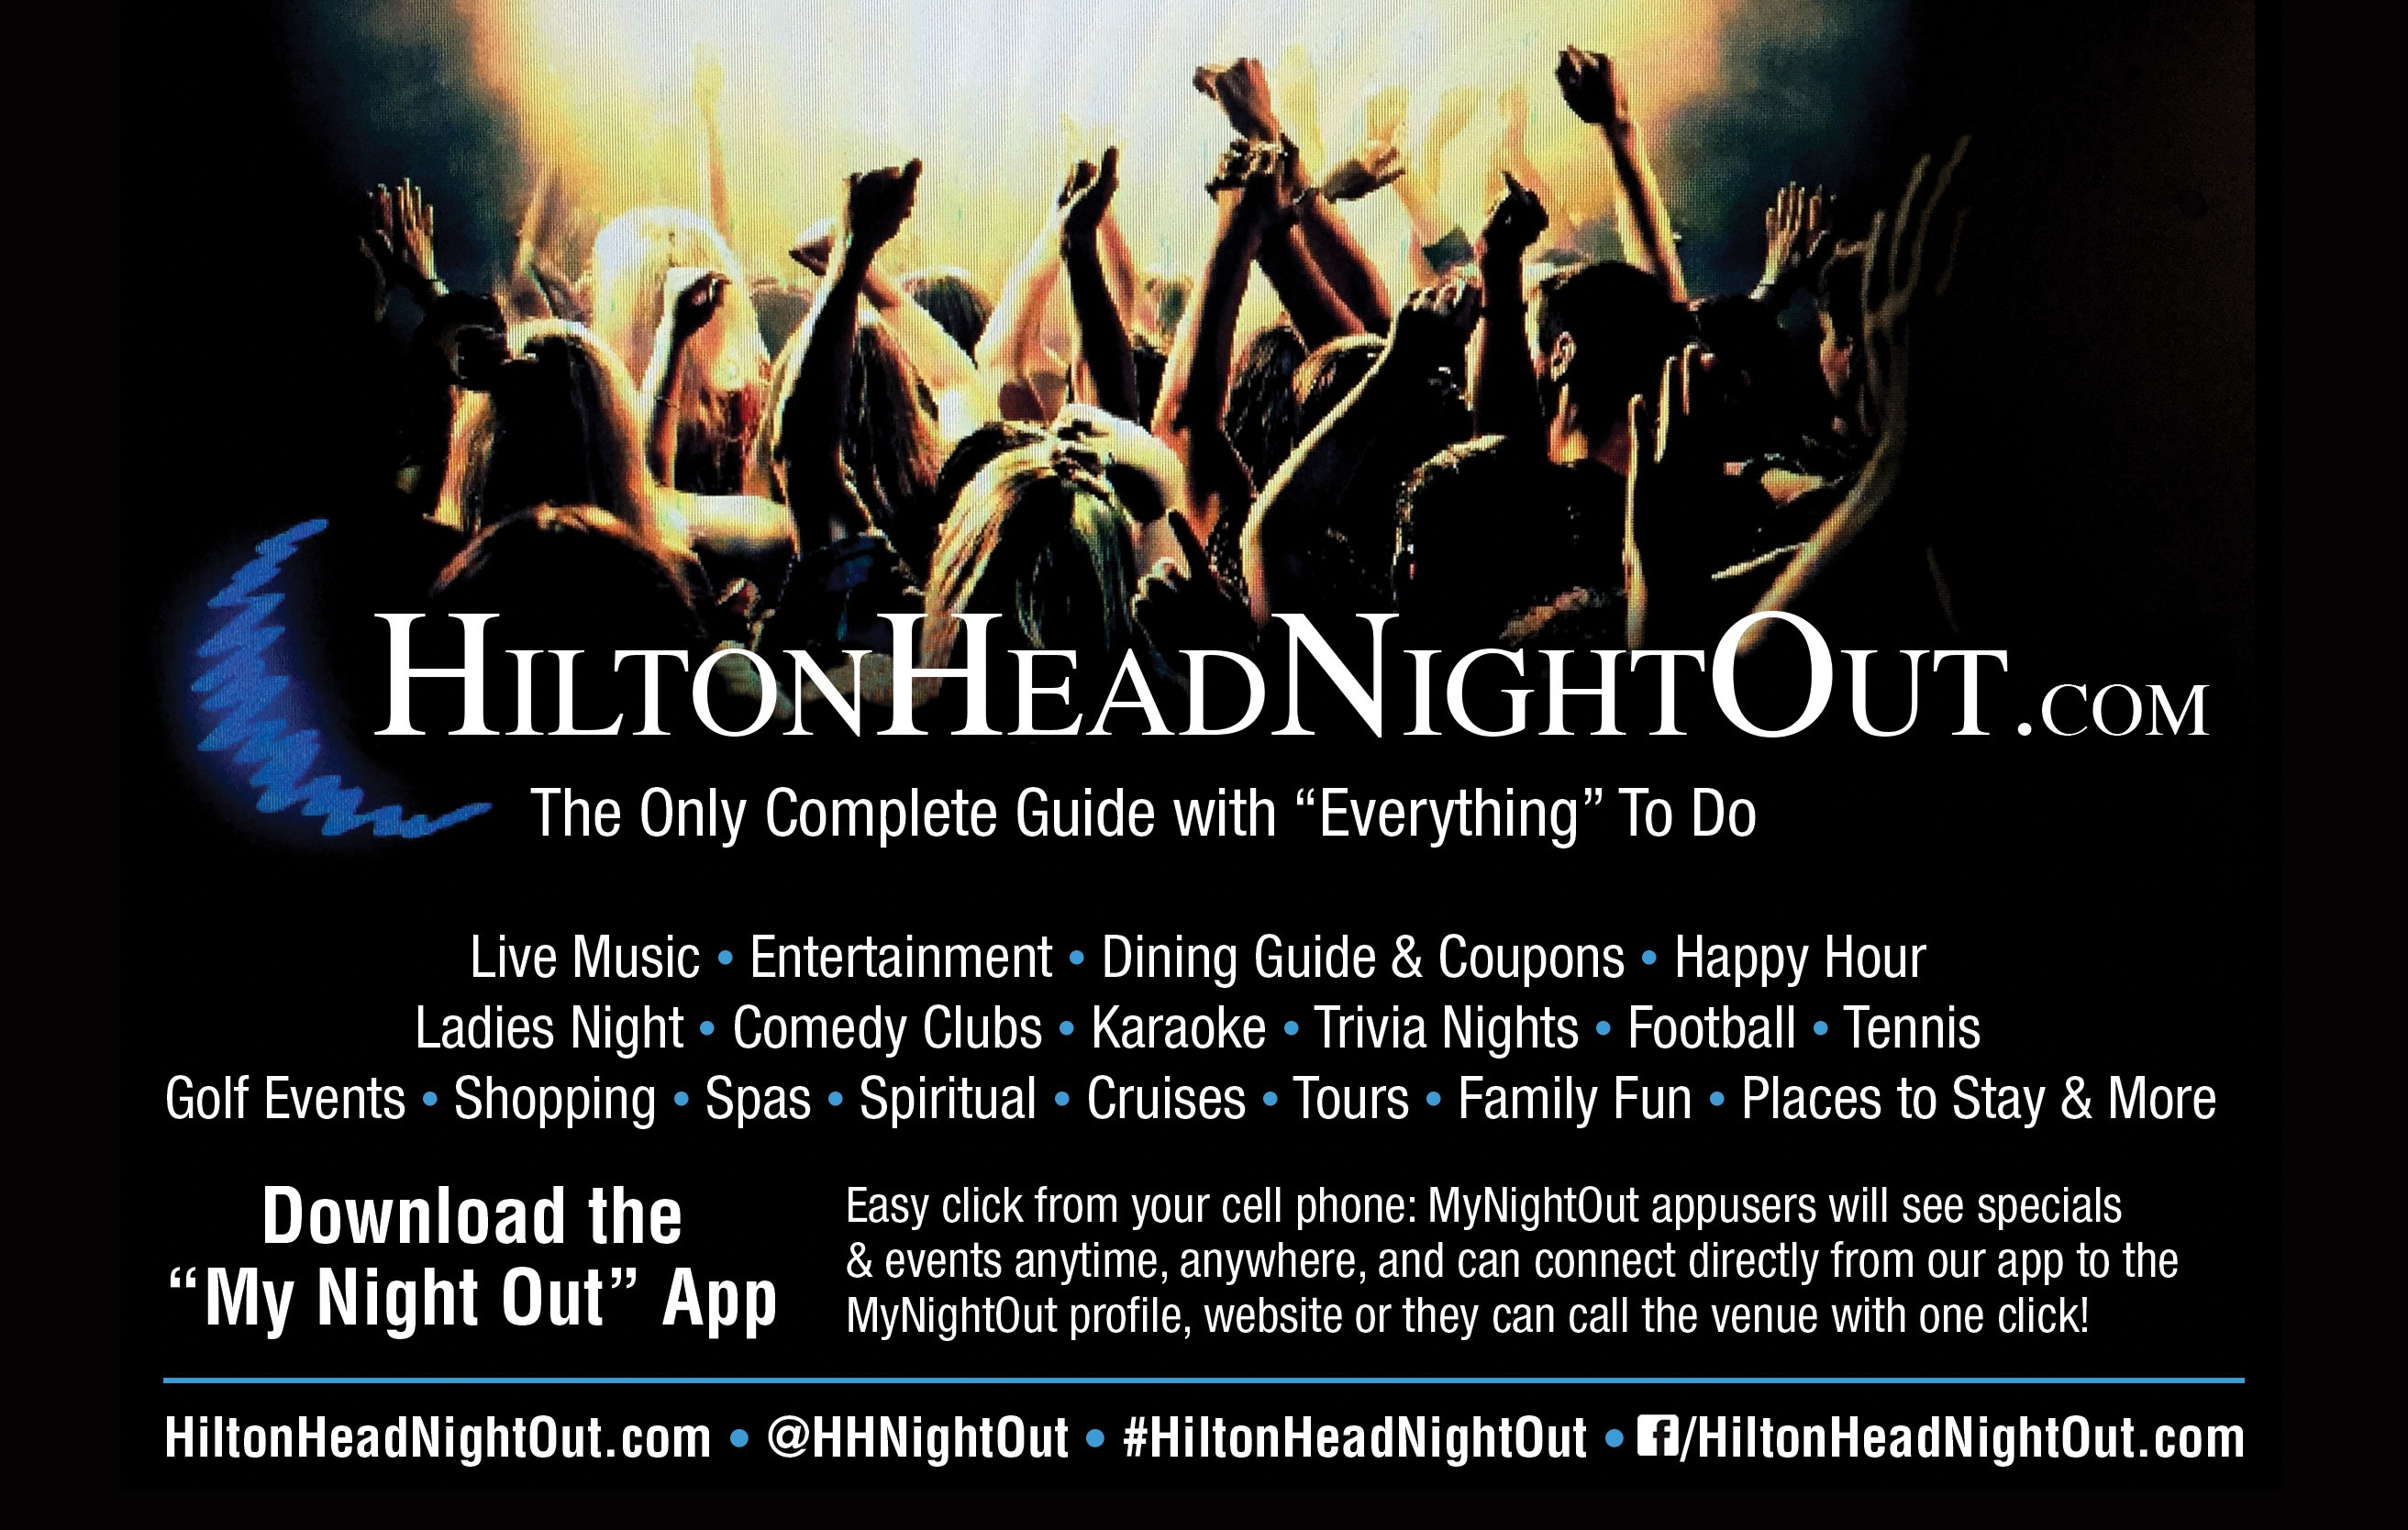 Hilton Head Night Out, Live Music, Entertainment, Dining & Bar Specials & More